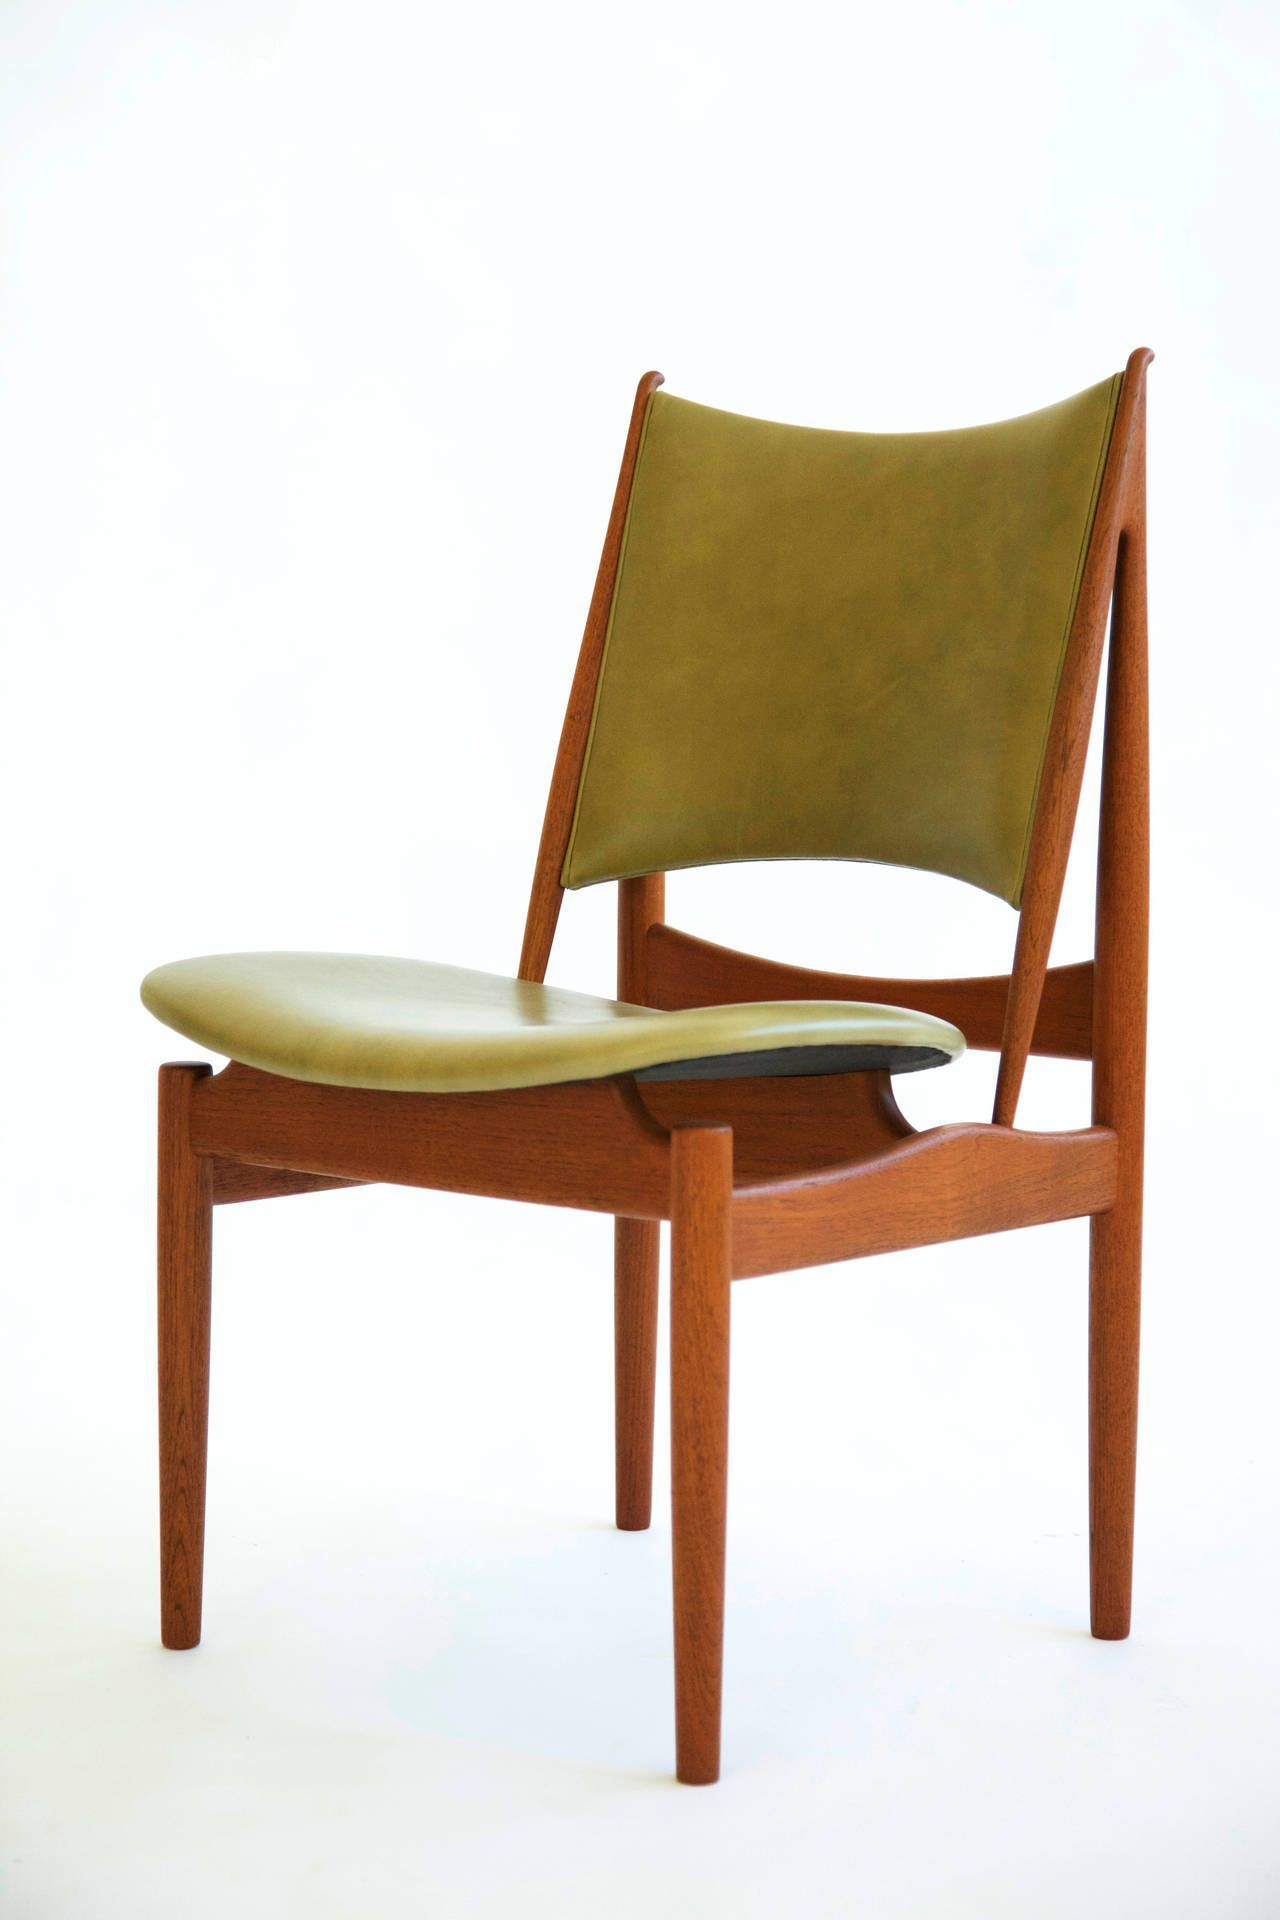 Finn juhl egyptian chair niels vodder the strong right angles of the back support show a strong egyptian influence